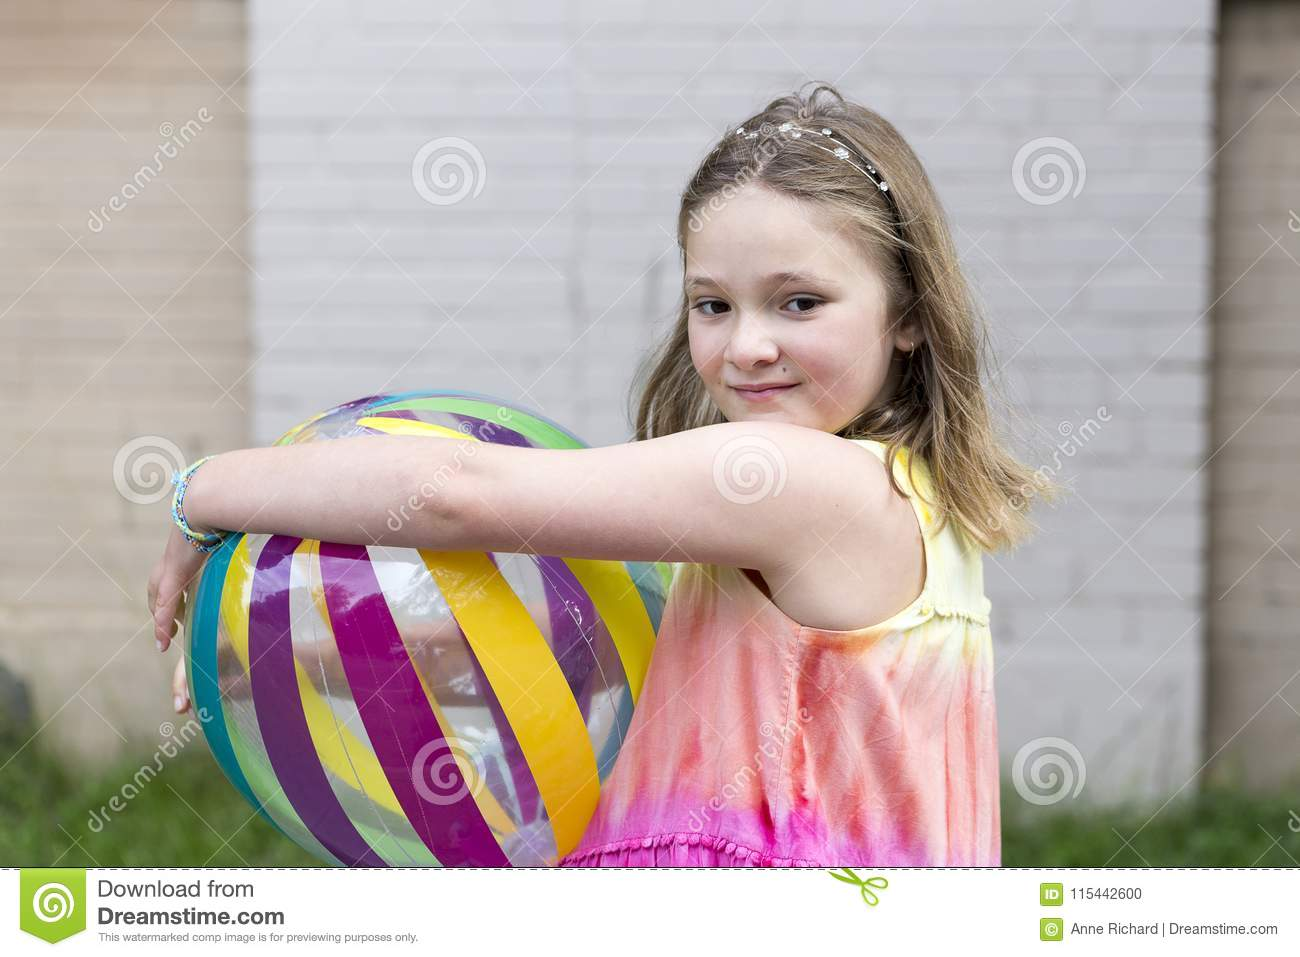 Little girl with dreamy look holding multicolored beach ball